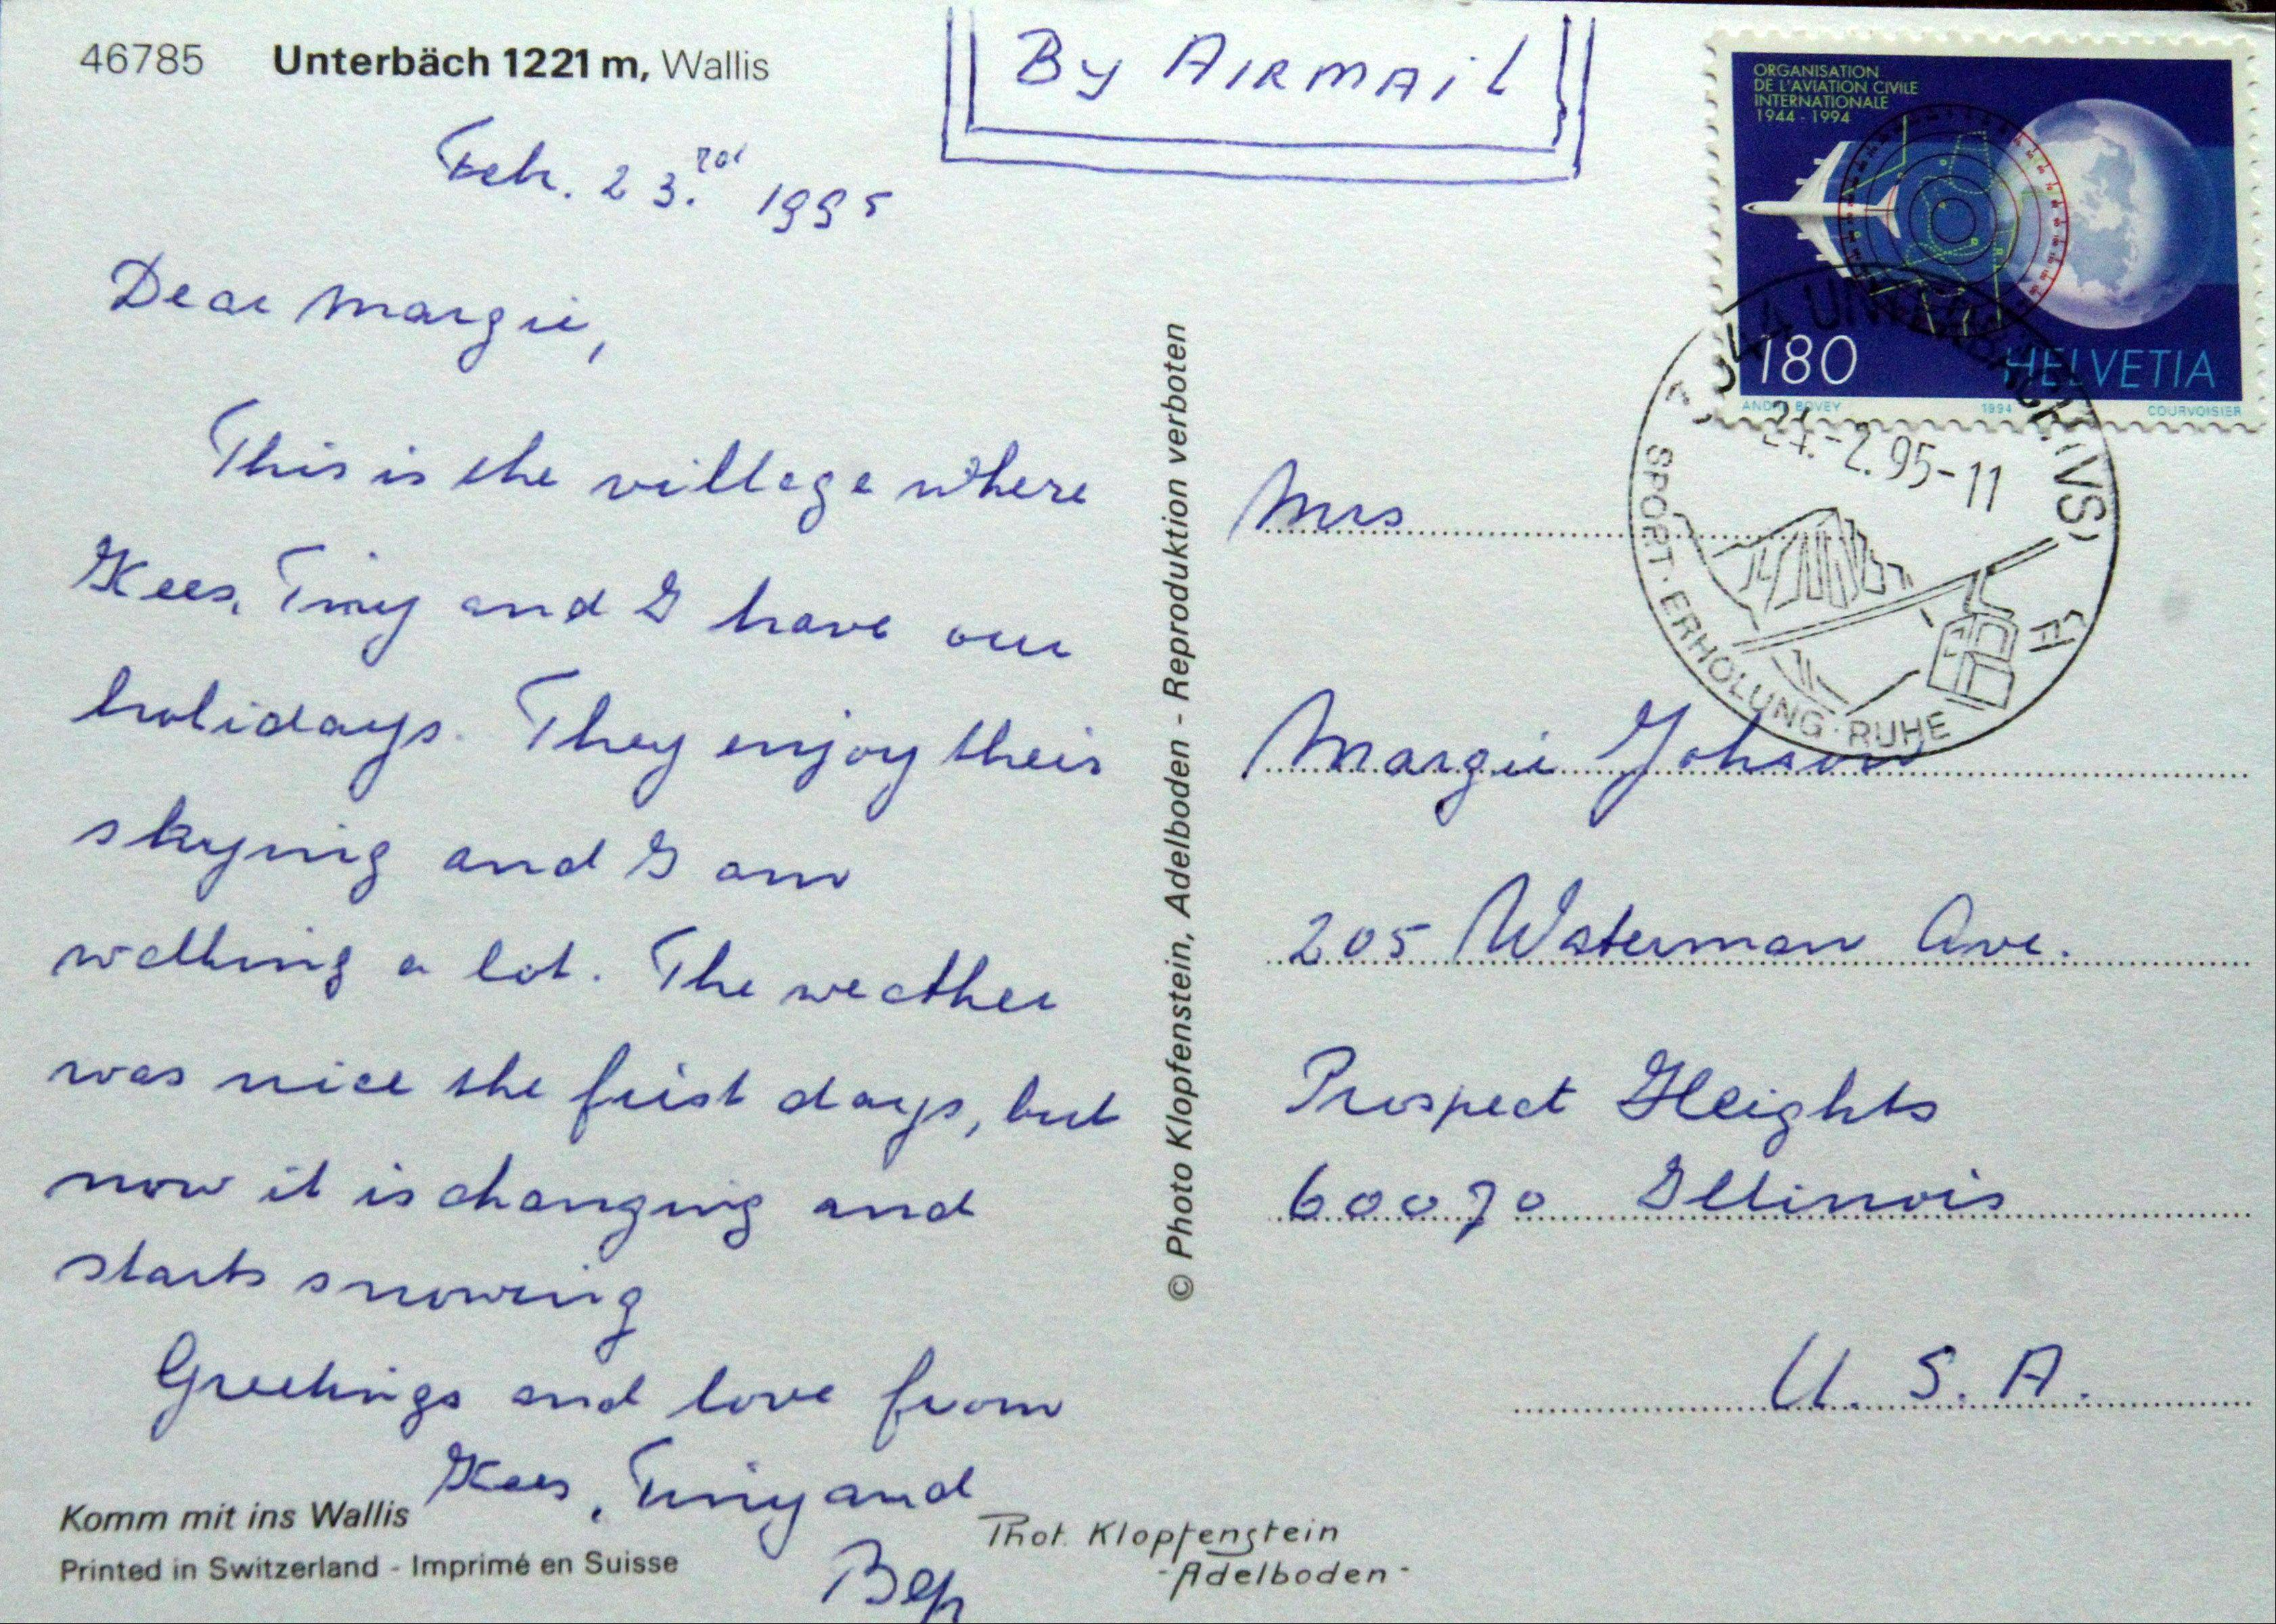 This is a postcard Marge Johnson of Prospect Heights received from pen pal Bep Timmermans.